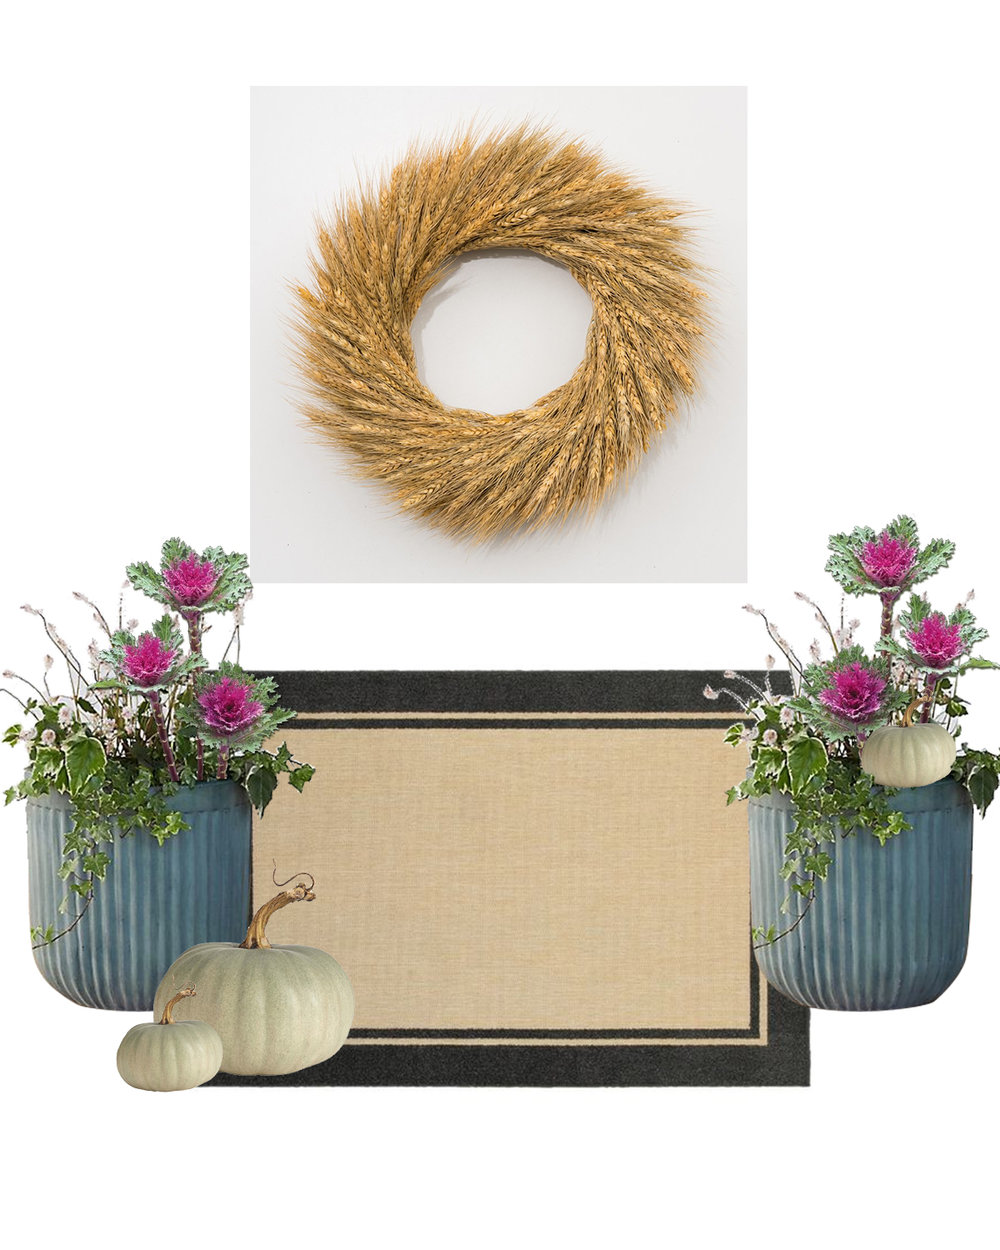 wreath  |  area rug  |  planters  |  ornamental kale image  |  pumpkins image